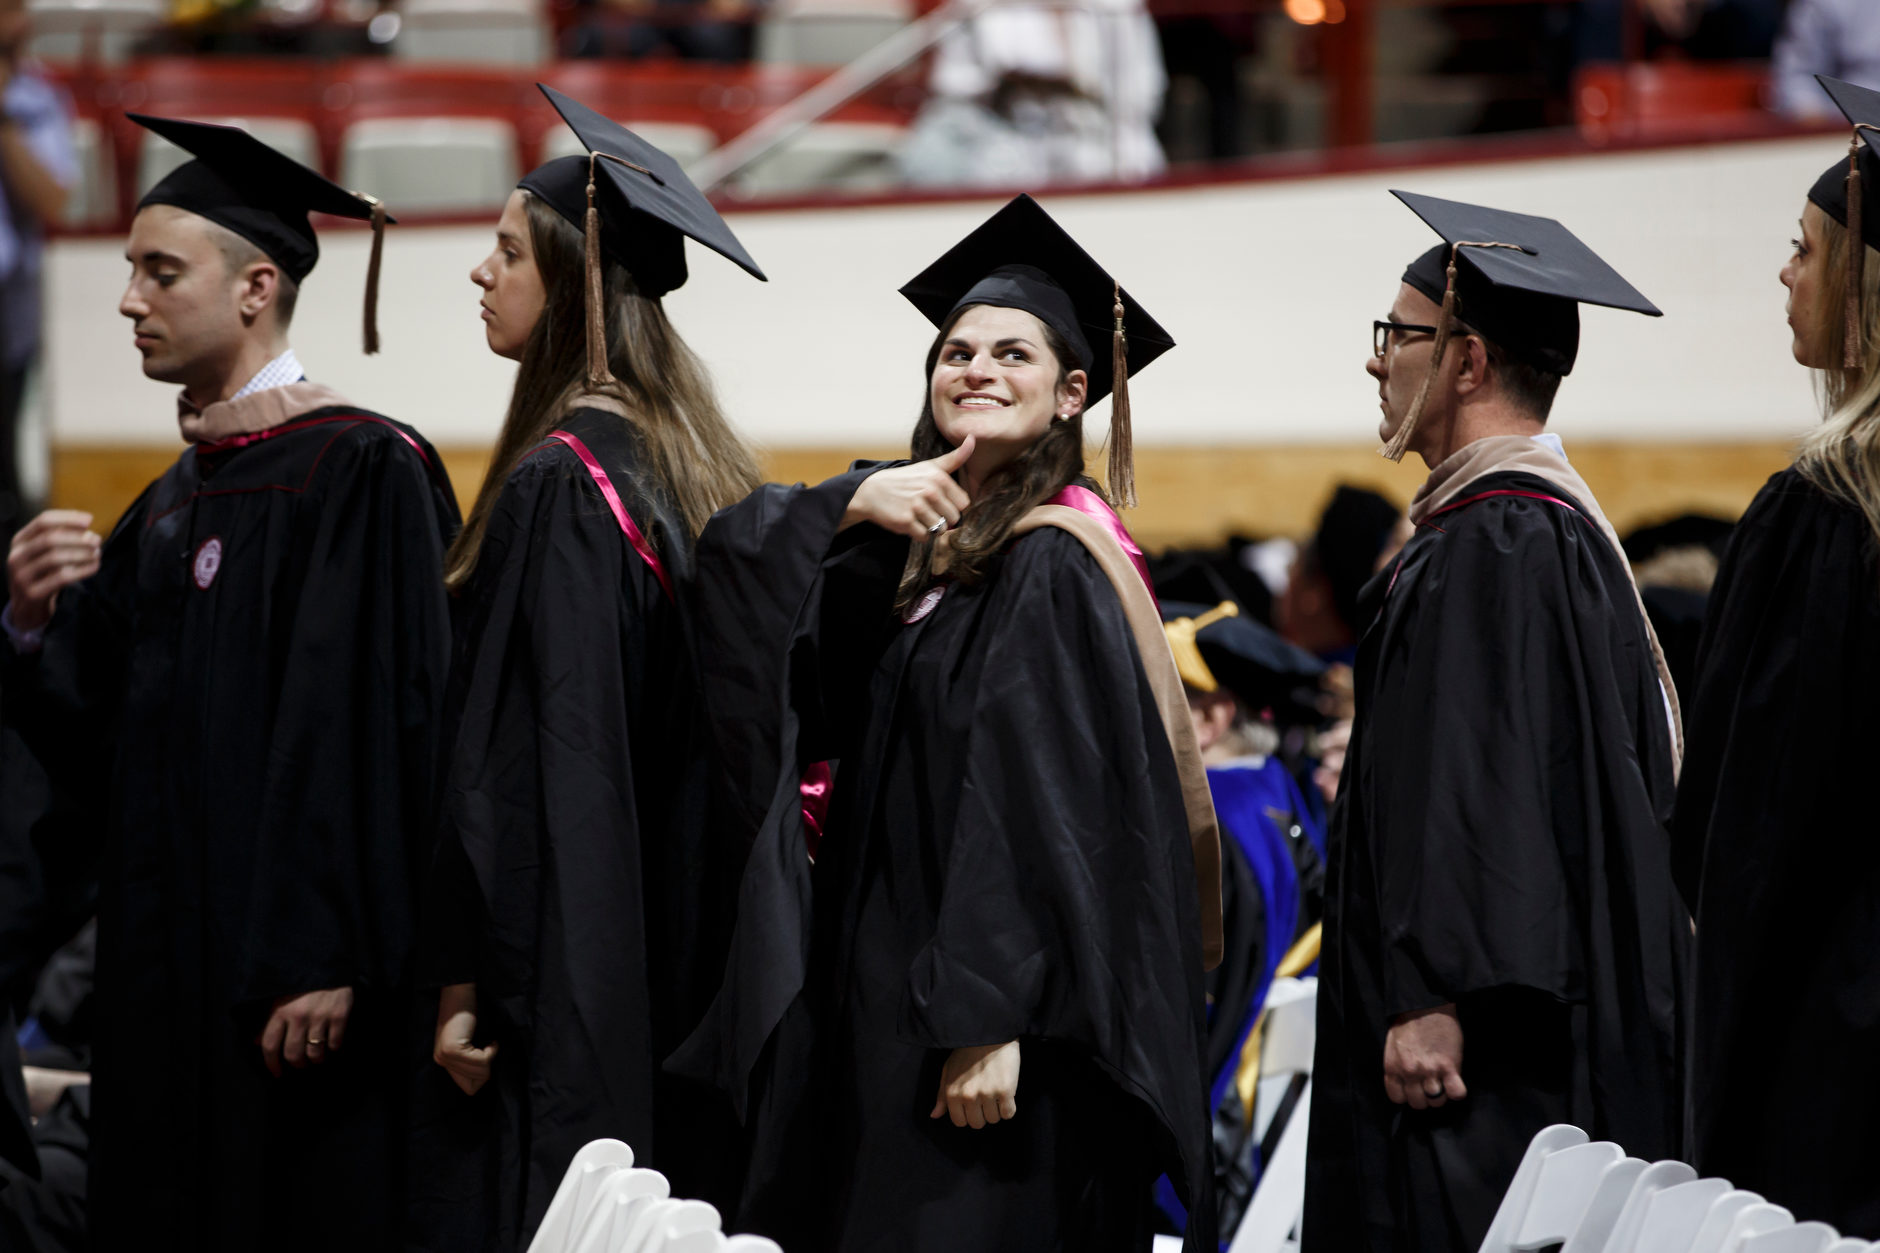 A graduate gives friends in the audience a thumbs up during the Indiana University Bloomington Graduate Commencement at Assembly Hall on Friday, May 3, 2019. (James Brosher/Indiana University)